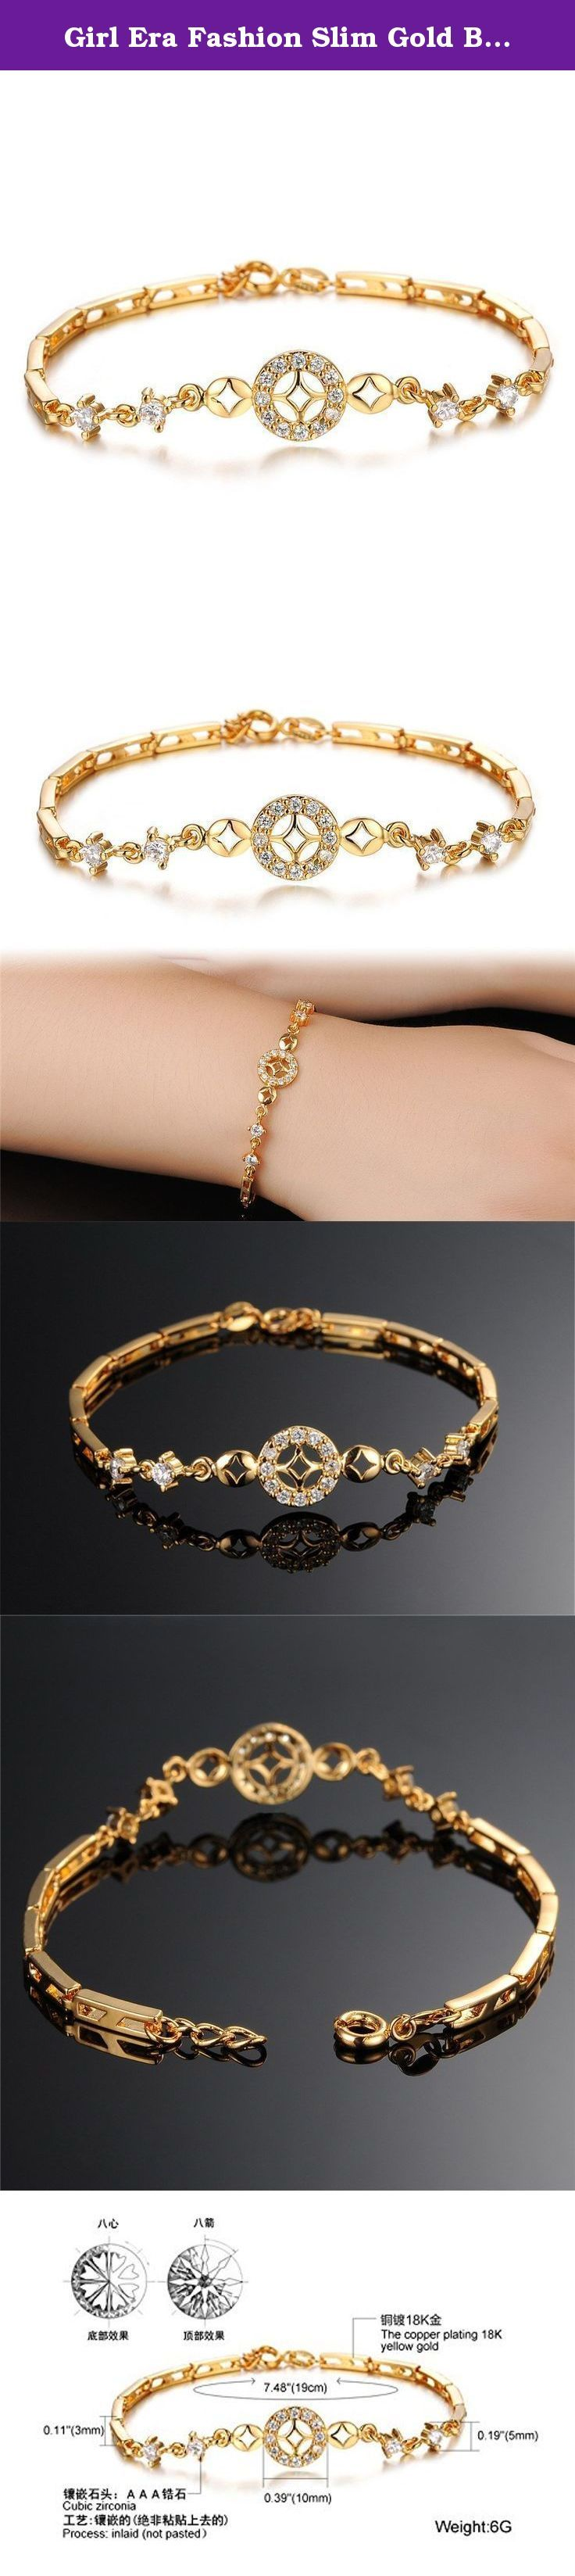 """Girl Era Fashion Slim Gold Bling Cubic Zirconia Princess Charm Tennis Bracelets,7.48"""". Indulge yourself with glamorous fashion jewelry! Girl Era boasts of numerous elegant necklaces, pendants, earrings, bangles, bracelets, brooches in various designs to choose from. The surface of bracelet adopt delicate polishing technology and plated with 18K Gold,it's long colorfast than common electroplating.Silver color part dealing with sand blasting treatment,can resist from scratches effectively...."""